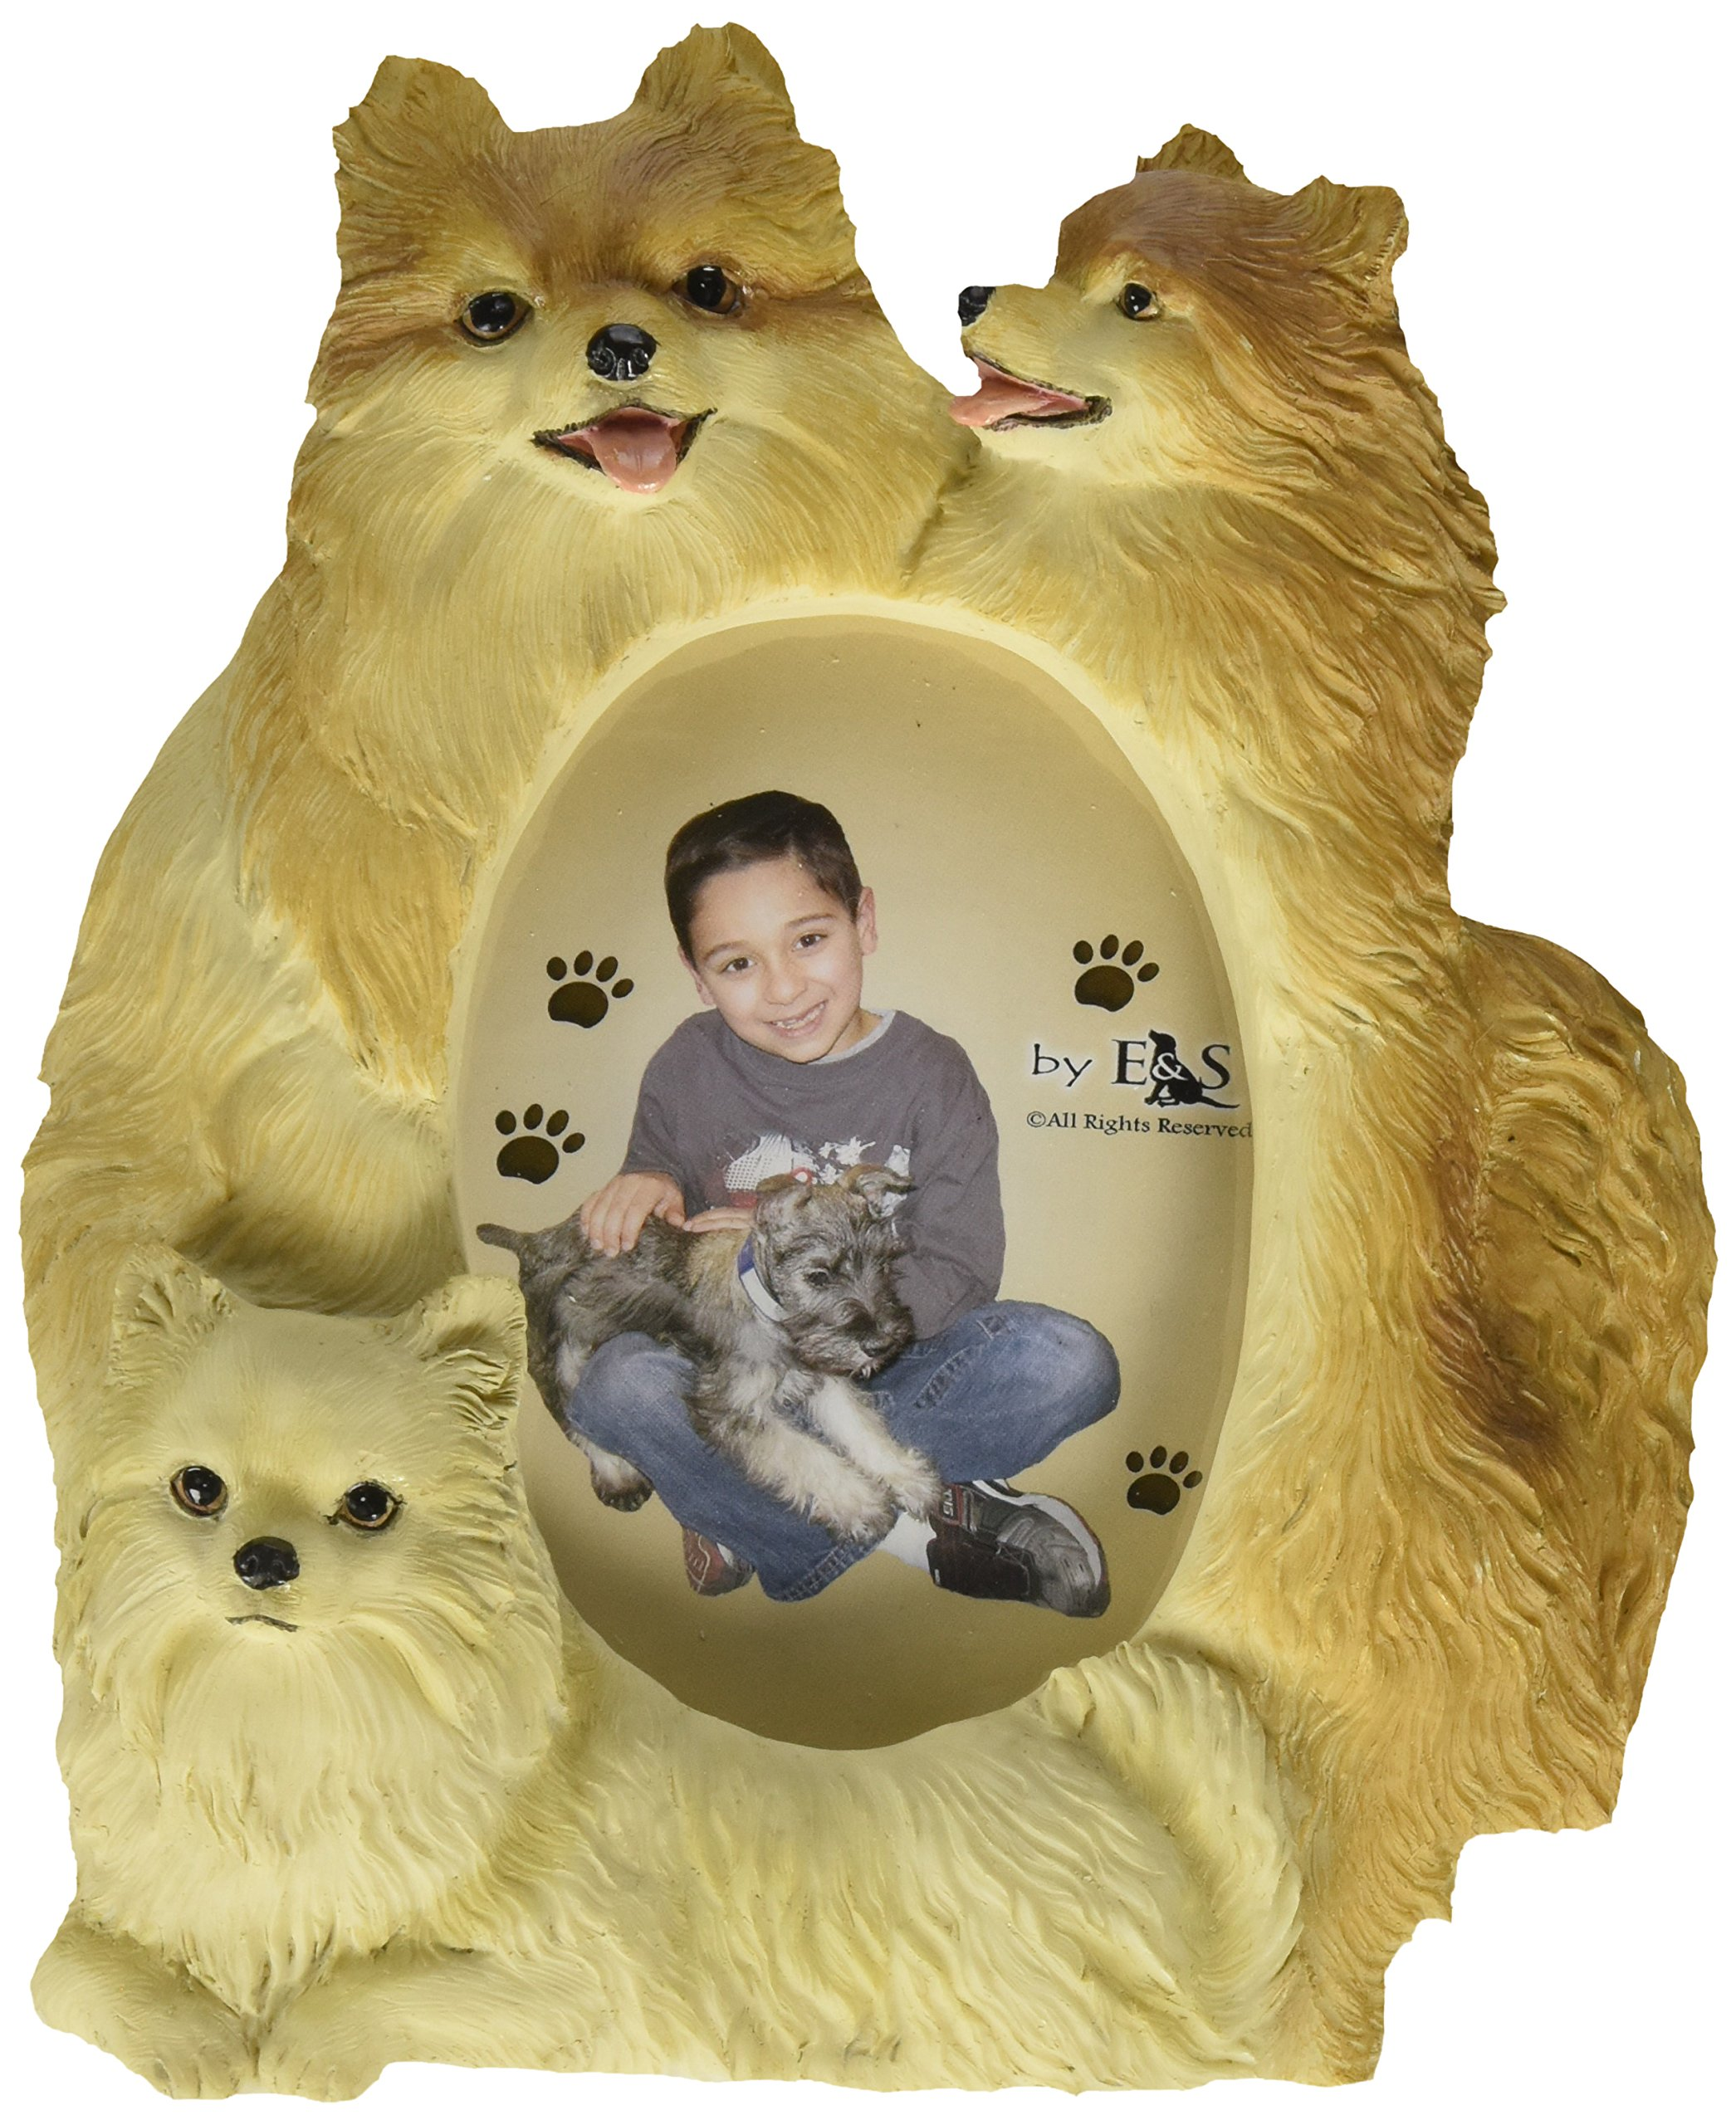 Pomeranian Gift Picture Frame Holds Your Favorite 3x5 Inch Photo, A Hand Painted Realistic Looking Pomeranian  Family Surrounding Your Photo. This Beautifully Crafted Frame is A Unique Accent to Any Home or Office. The Pomeranian  Picture Frame Is The Per by E&S Pets (Image #1)